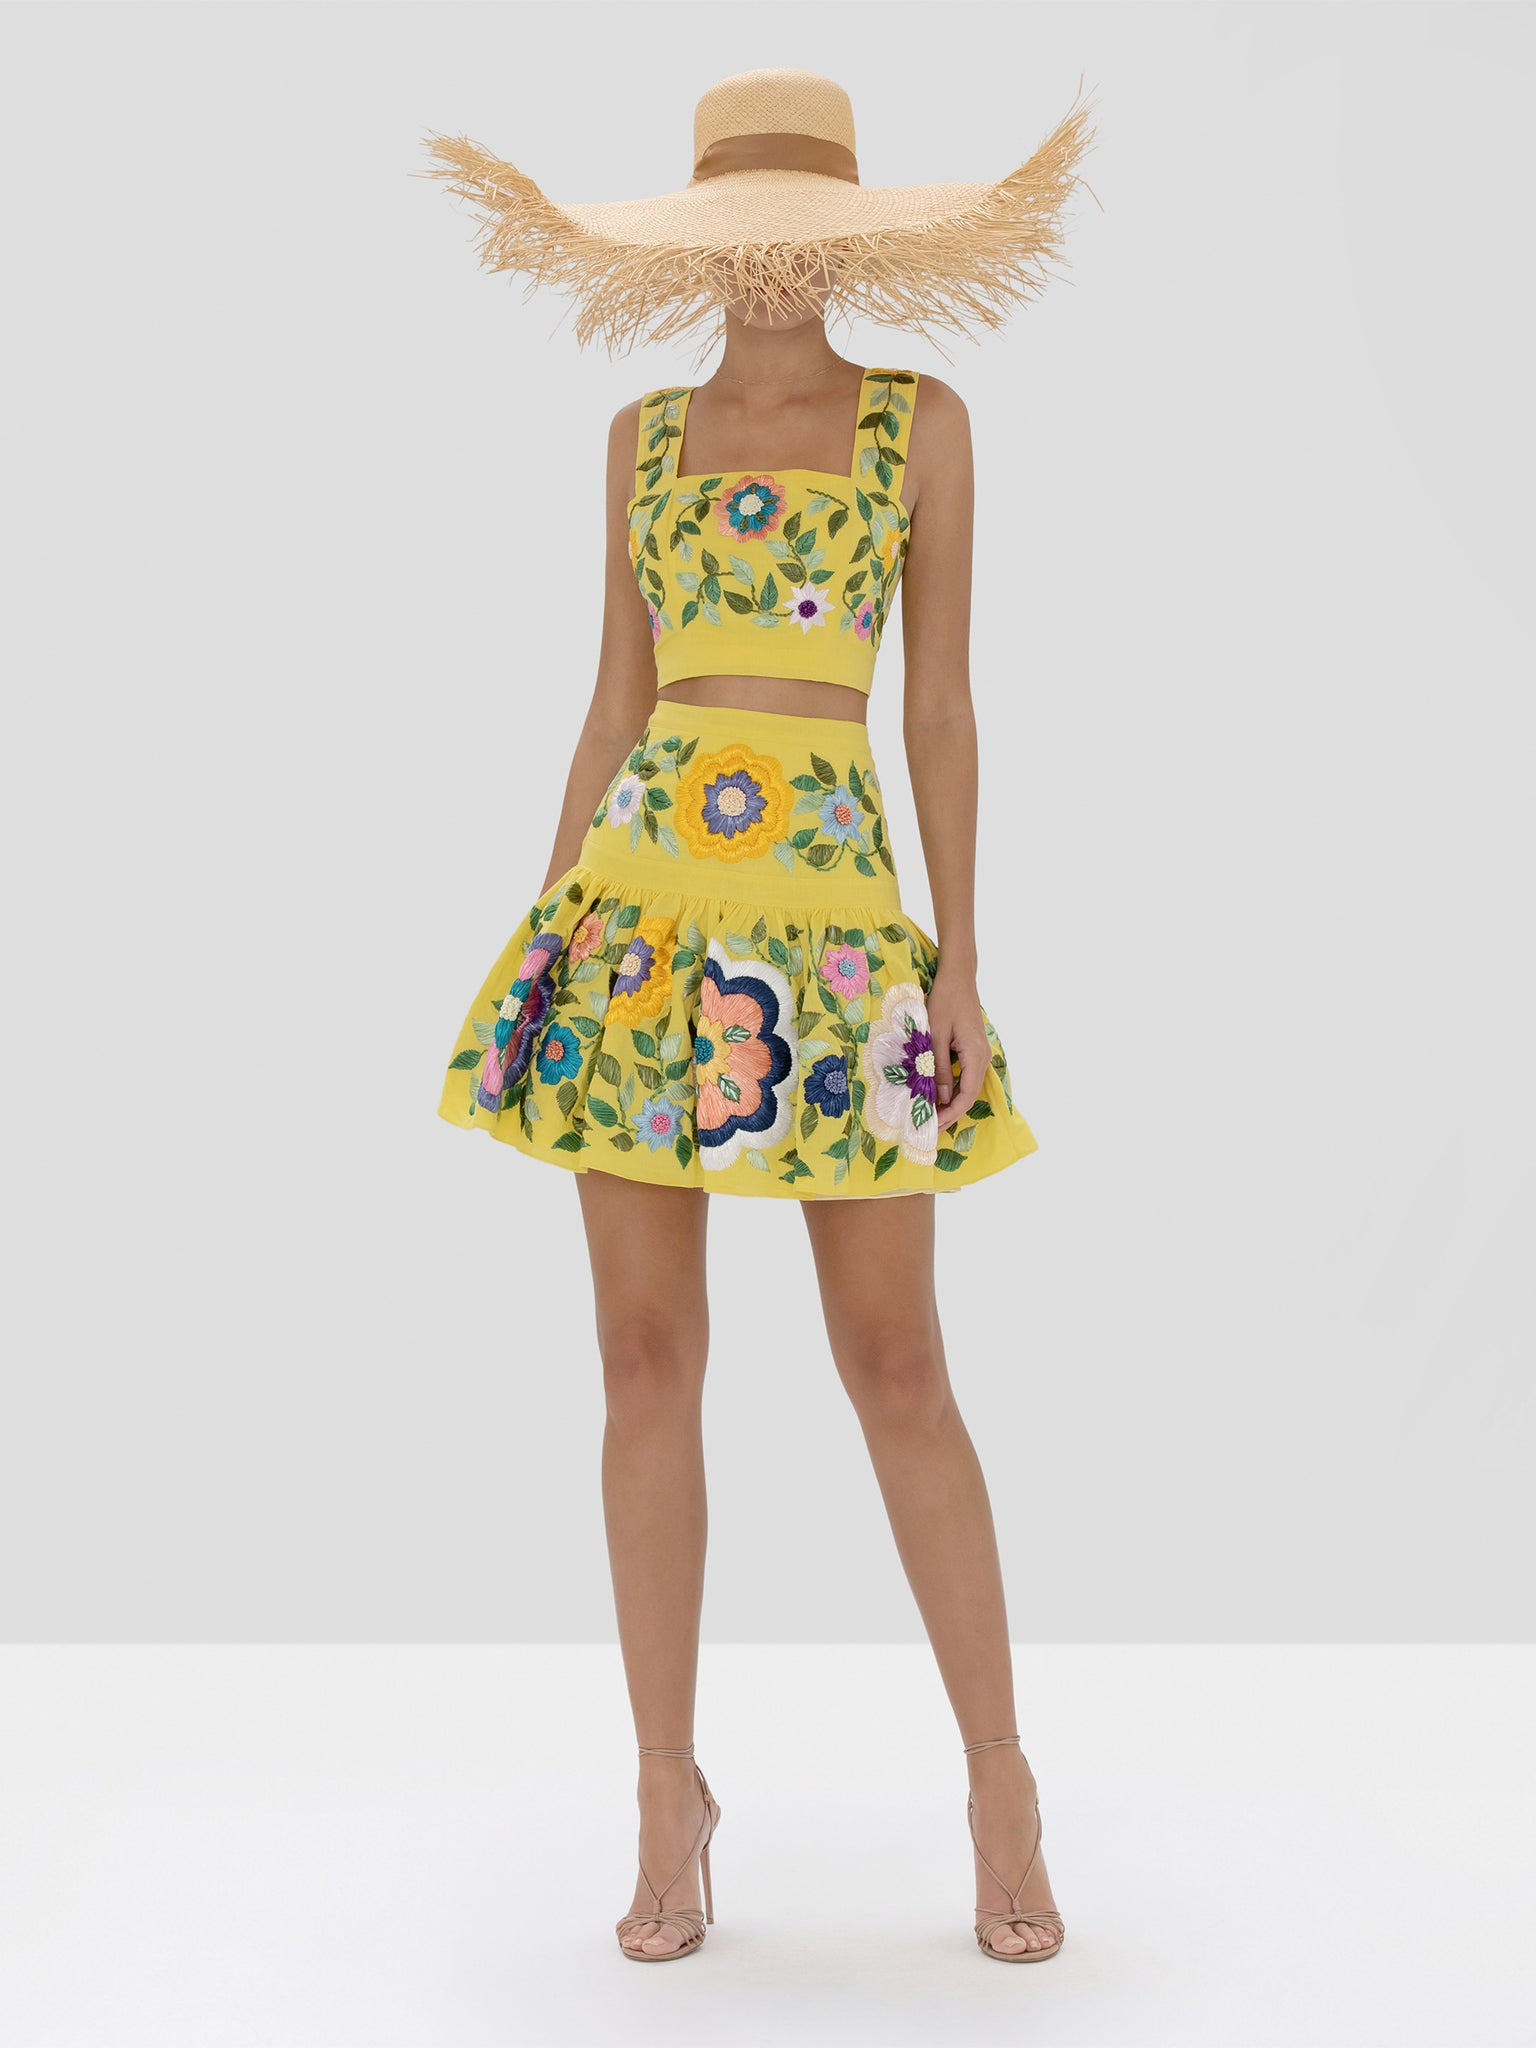 Alexis Bekki Crop Top and Kasandra Skirt in Blooming Floral from Spring Summer 2020 Collection